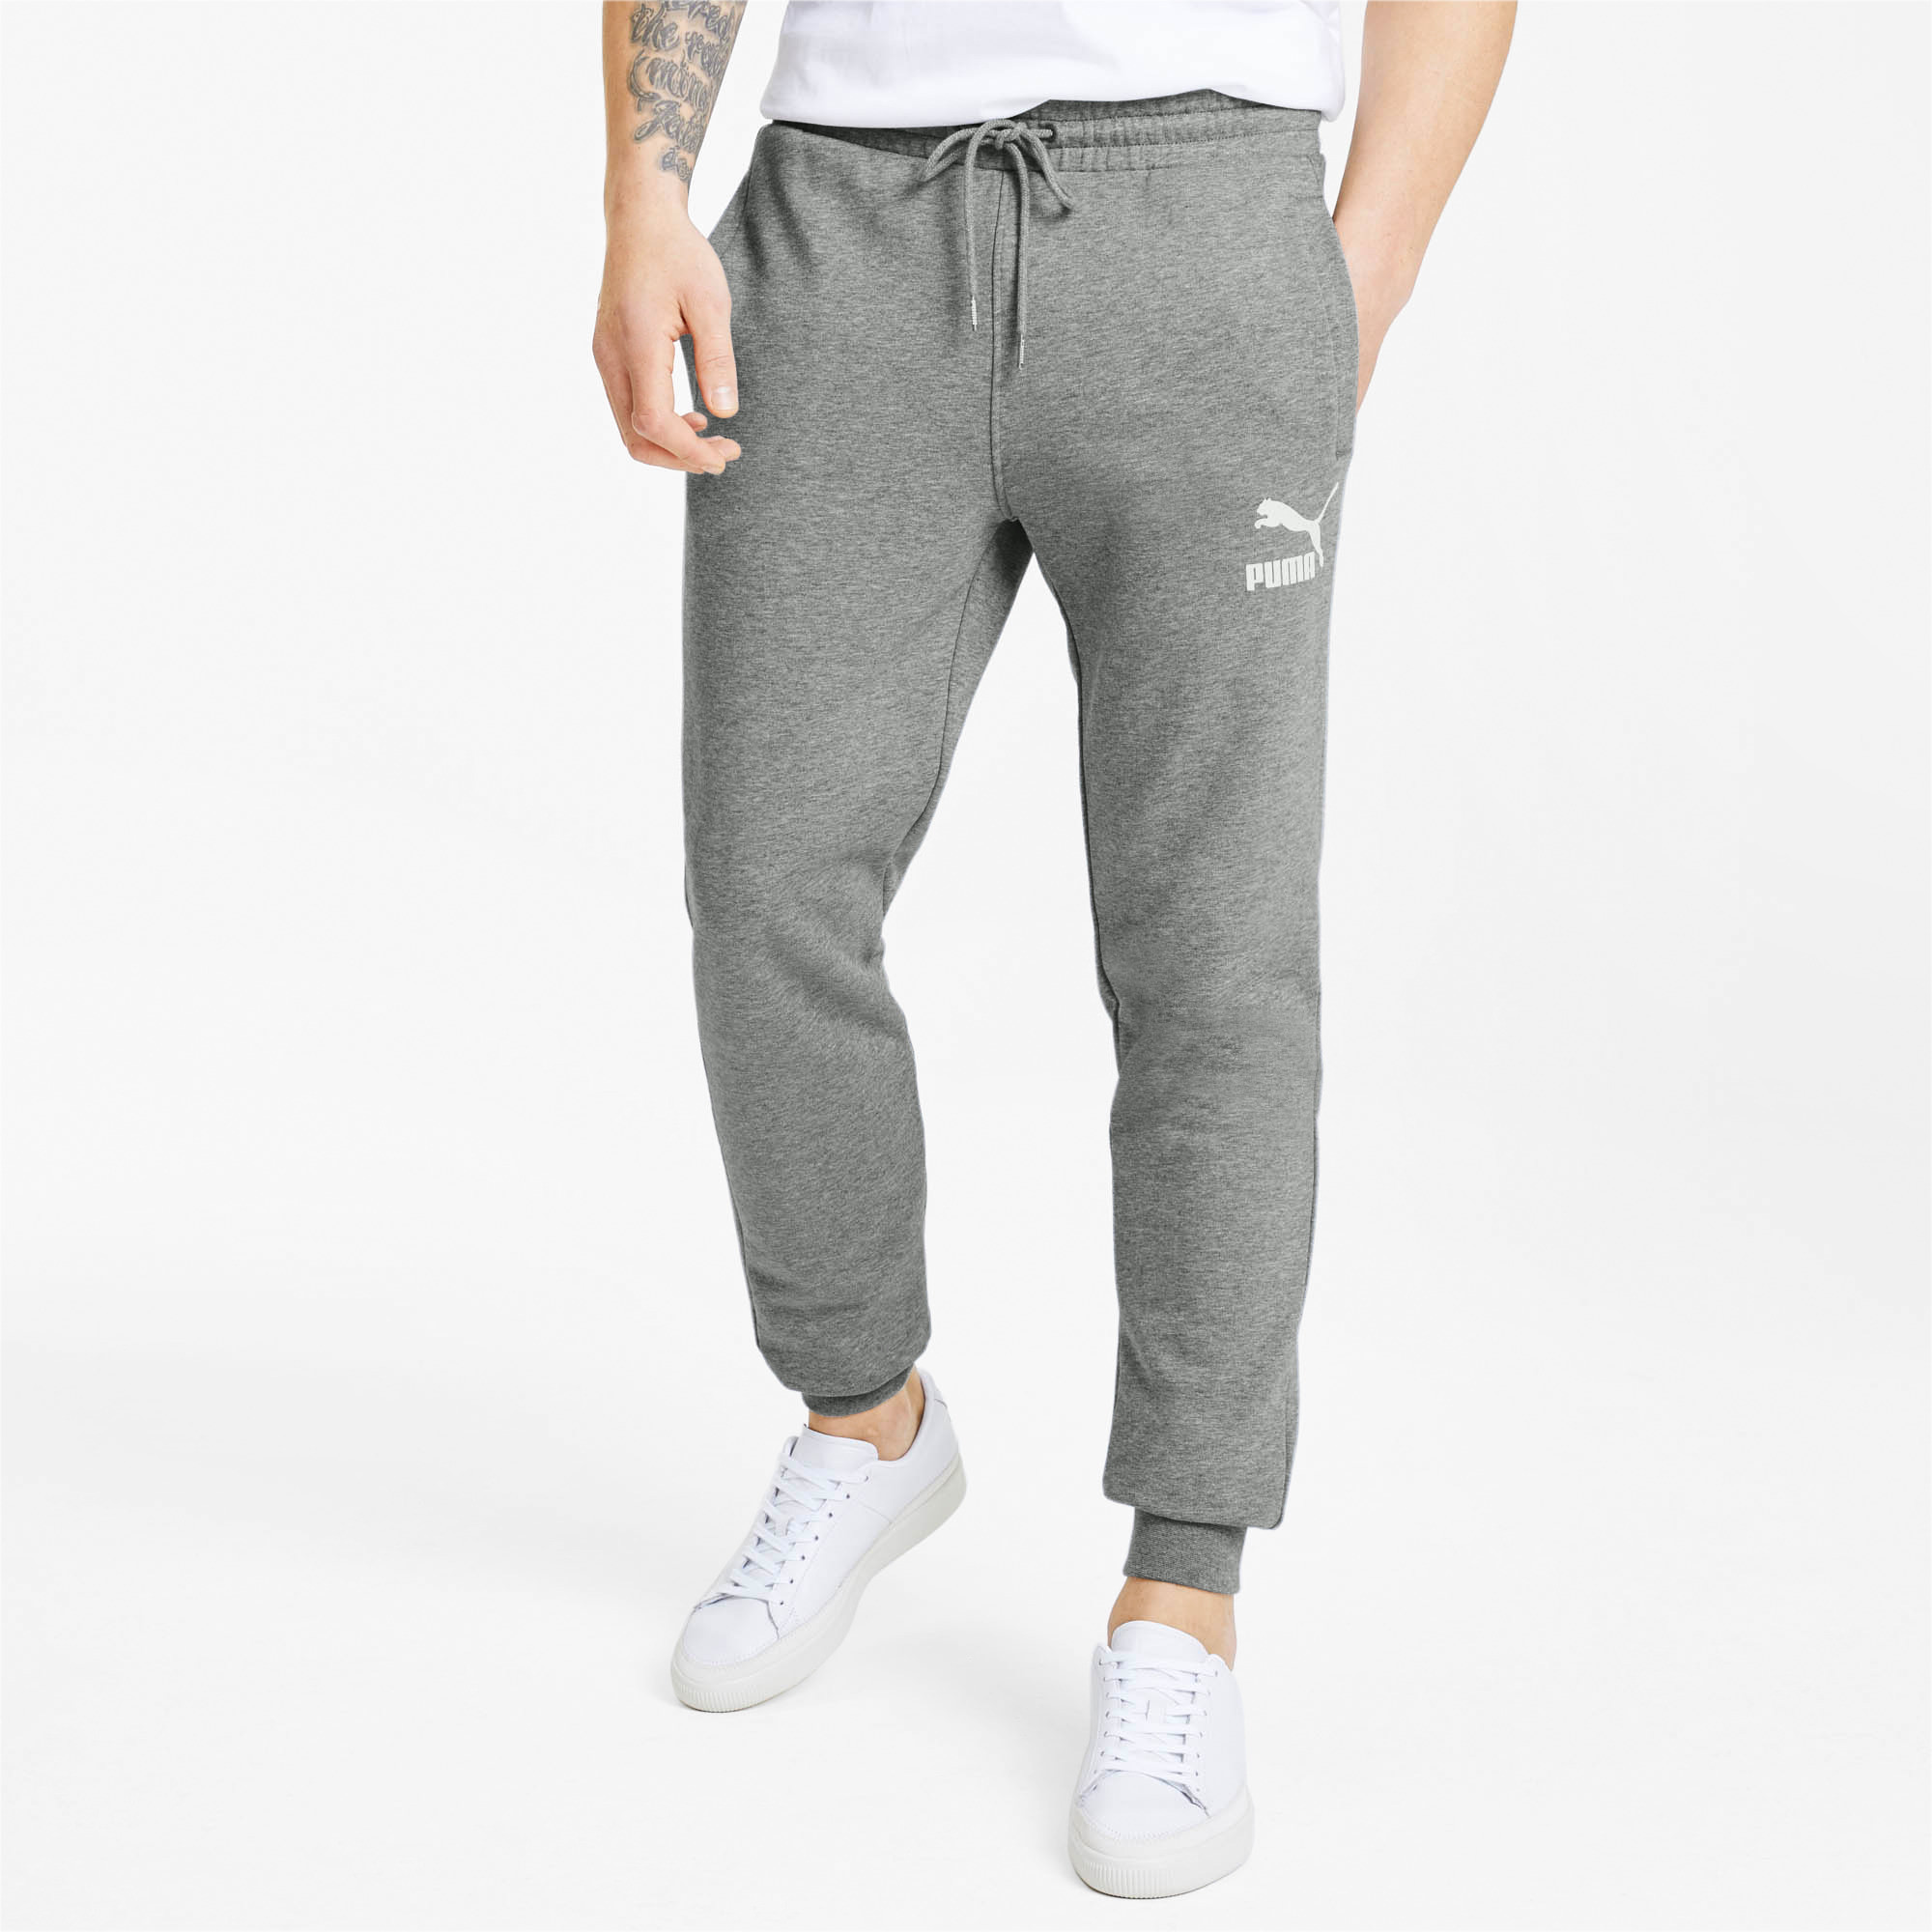 PUMA-Classics-Men-039-s-Cuffed-Sweatpants-Men-Knitted-Pants-Sport-Classics thumbnail 9